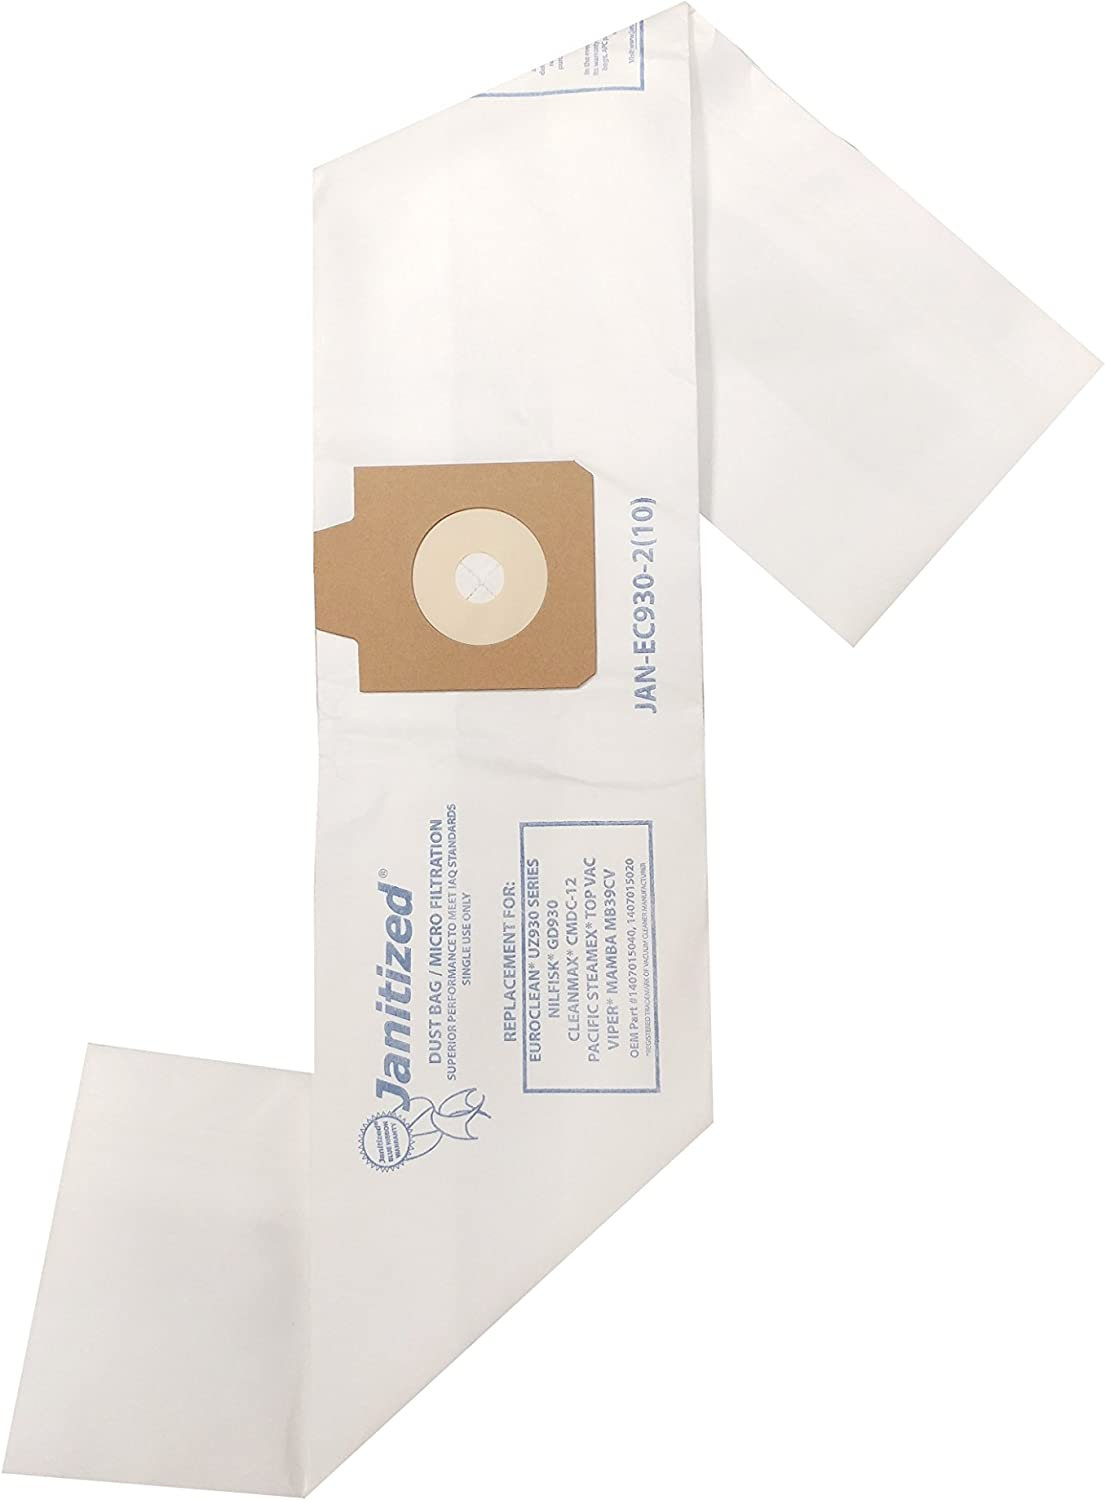 Janitized JAN-EC930-2(10) Premium Replacement Commercial Vacuum Bag, Euroclean UZ930, Viper MB39CV, Nilfisk GD930, Pullman Holt 390ASB, OEM#1407015040, 1407015020, B600900 (Pack of 10)